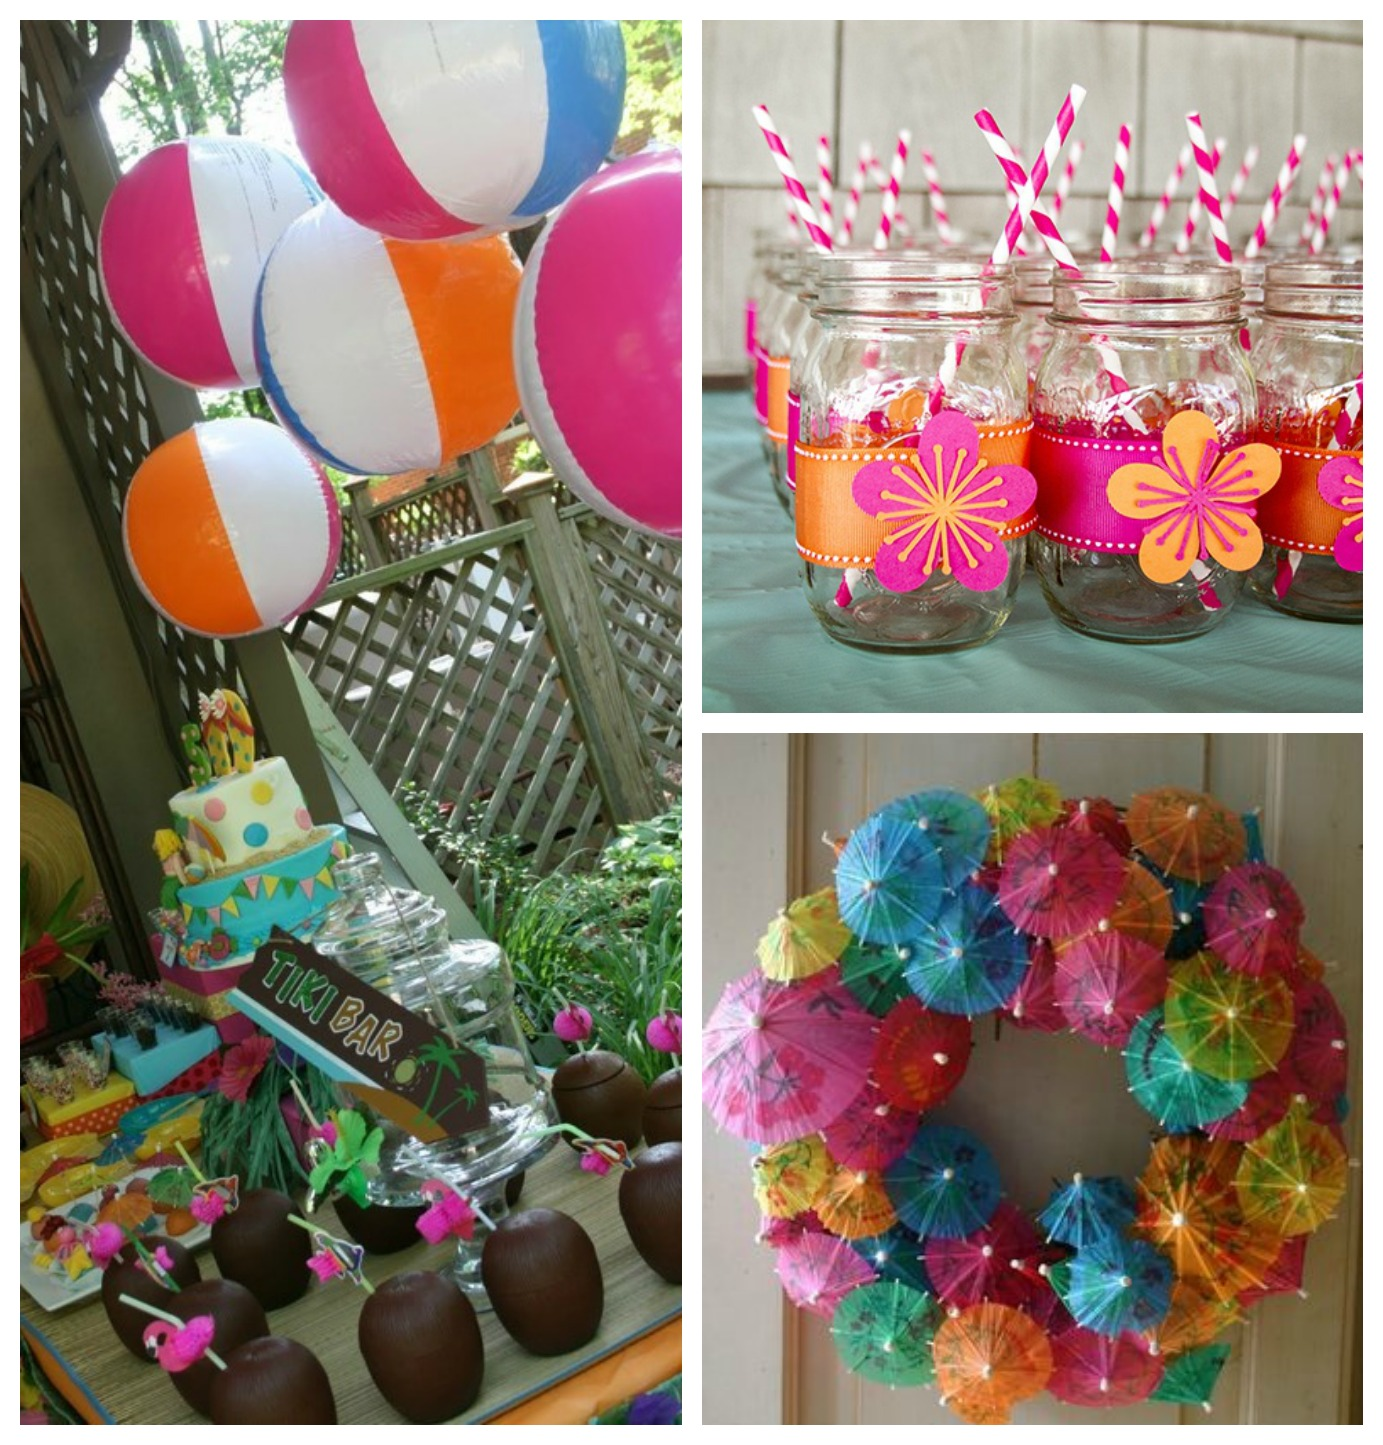 Bridal Shower Decorations Ideas Pinterest : ... Party Decor via Pinterest (sorry, the link on pinterest doesnt work